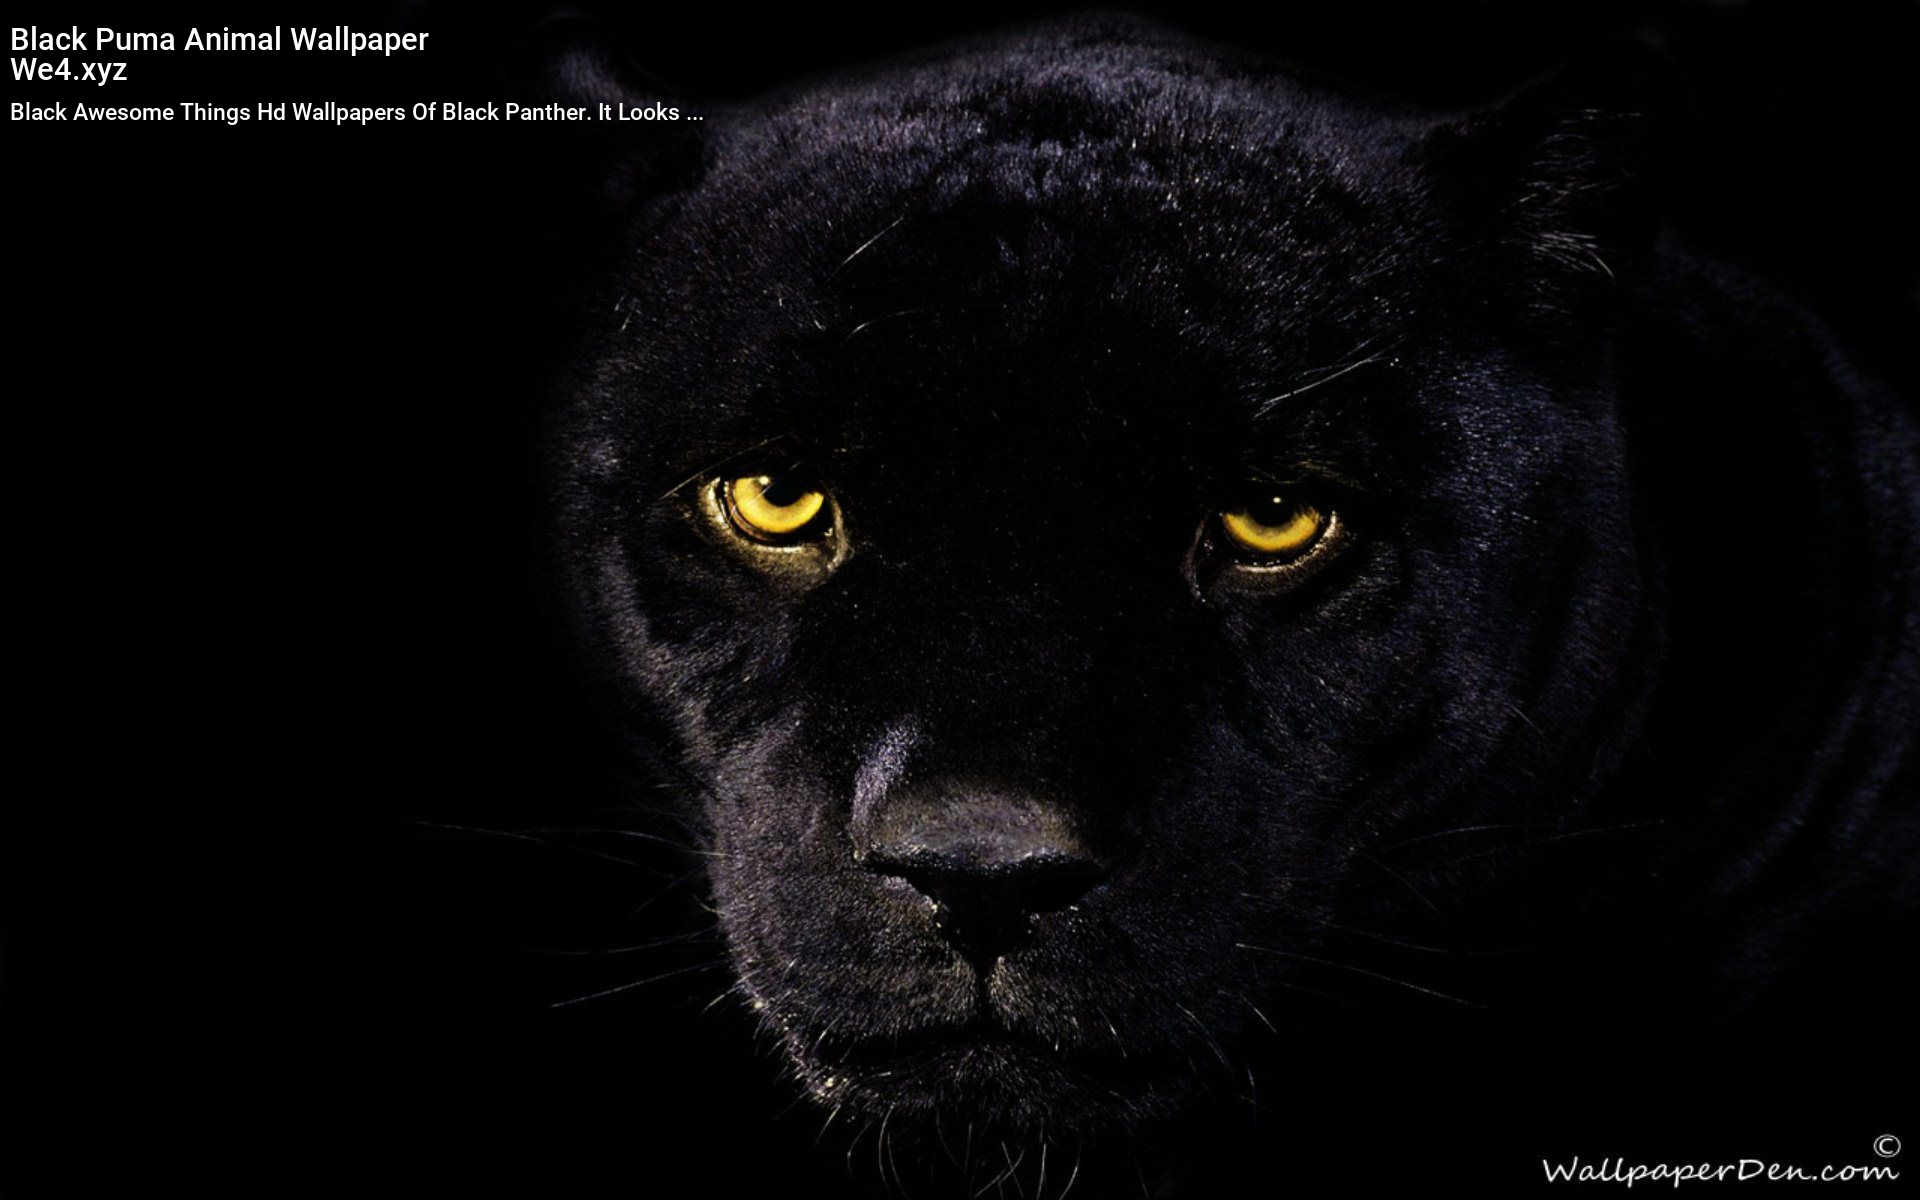 Black Puma Animal Wallpaper Panther Pictures Black Panther Cat Black Panther Hd Wallpaper